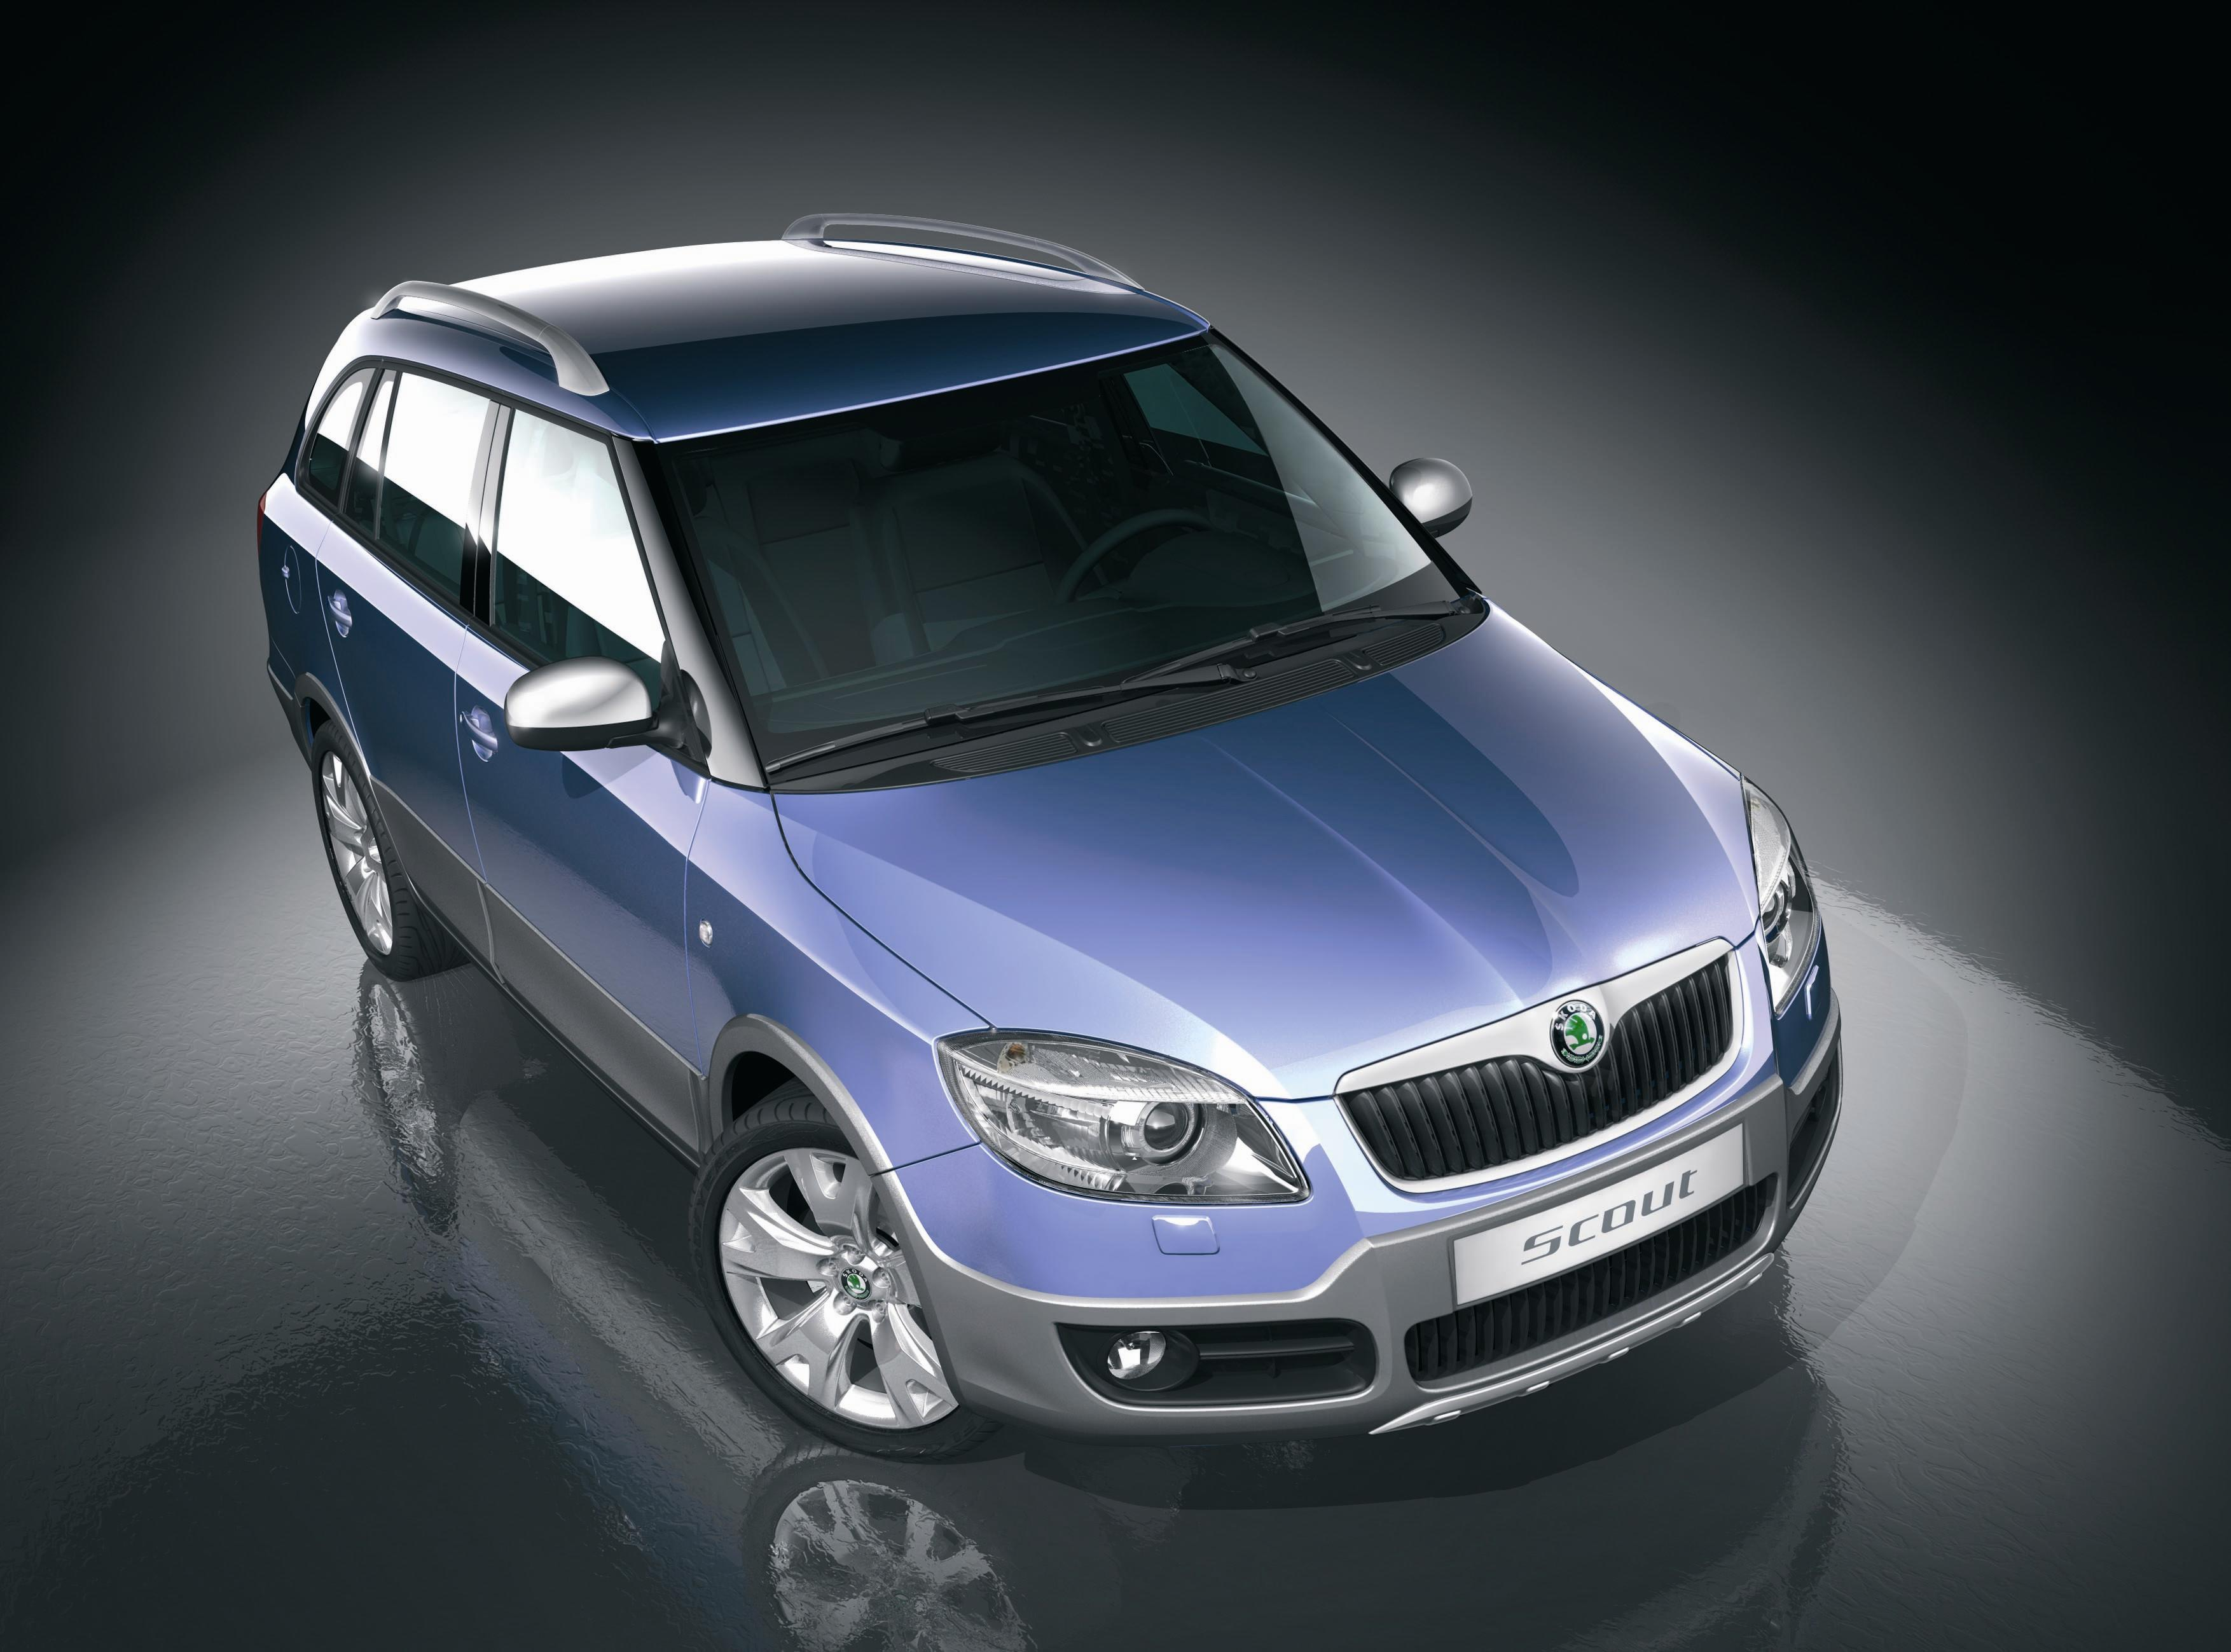 2007 skoda fabia scout review top speed. Black Bedroom Furniture Sets. Home Design Ideas